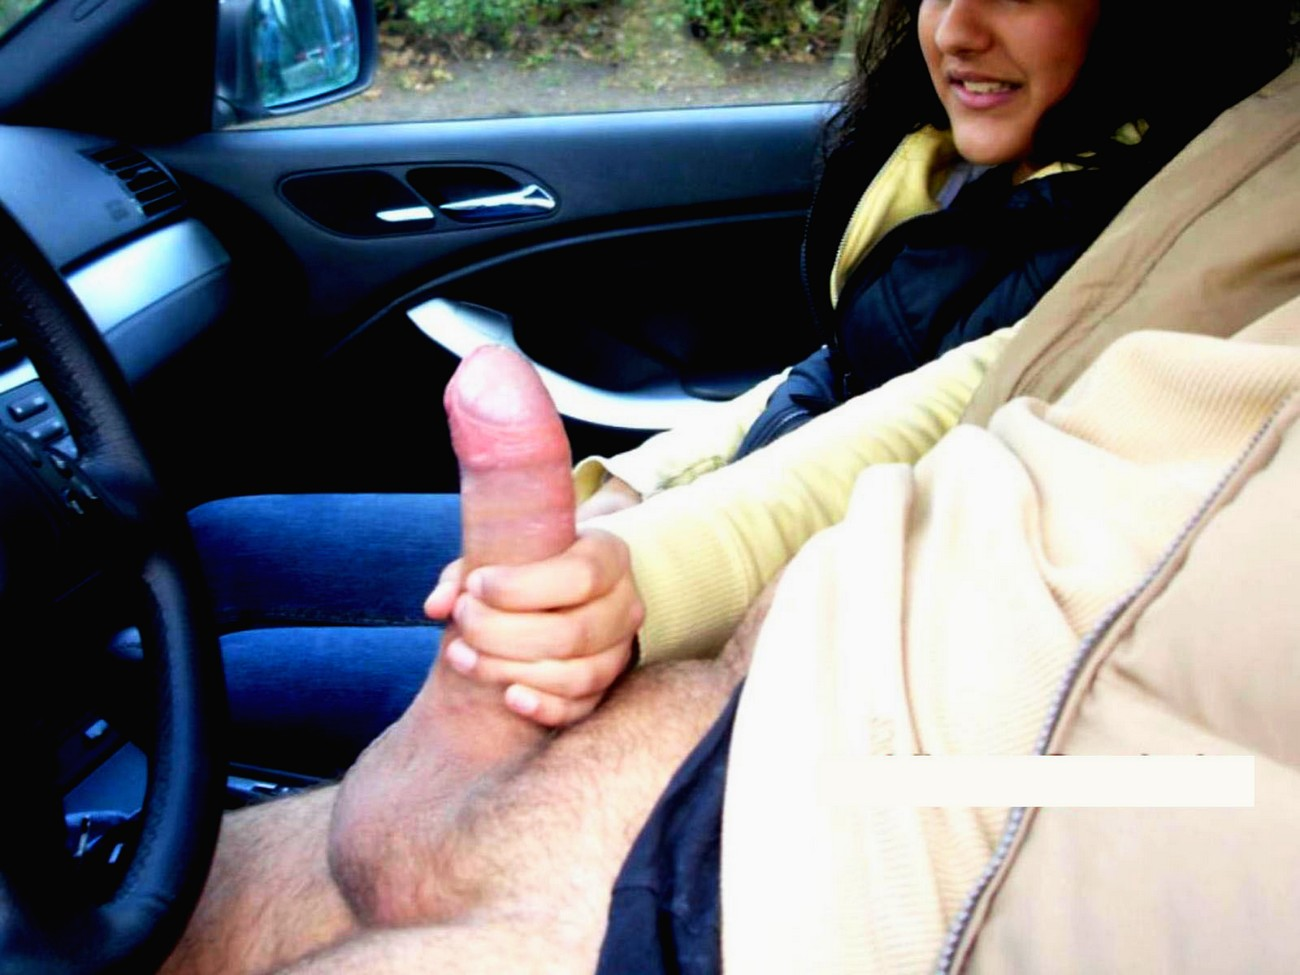 Stroking my thick juicy cock in my car